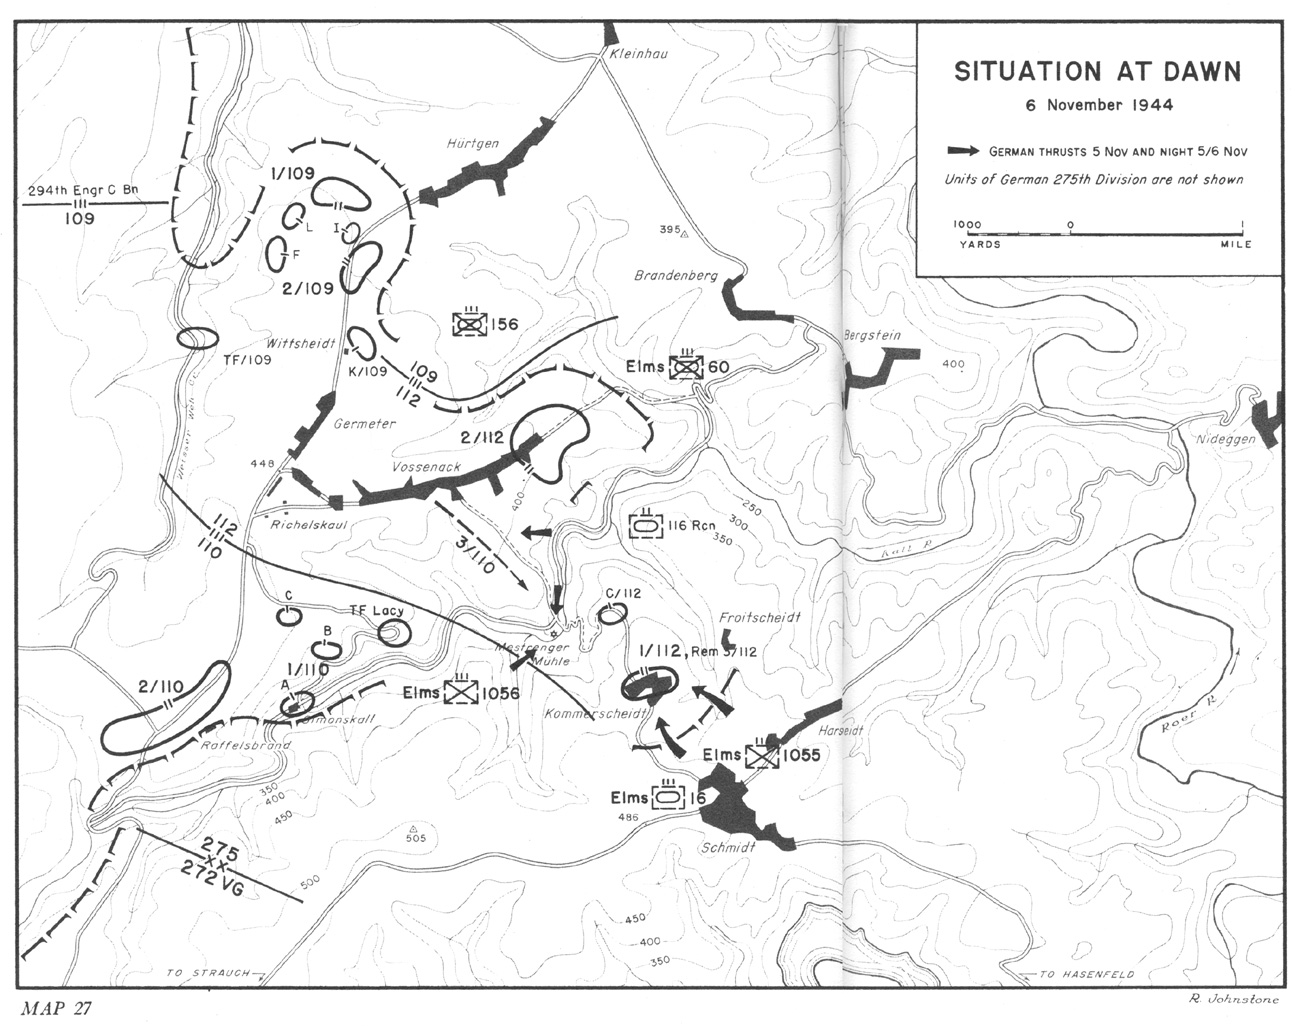 hyperwar three battles arnaville altuzzo and schmidt 116th Infantry Regiment Baseball Team situation at dawn 6 november 1944